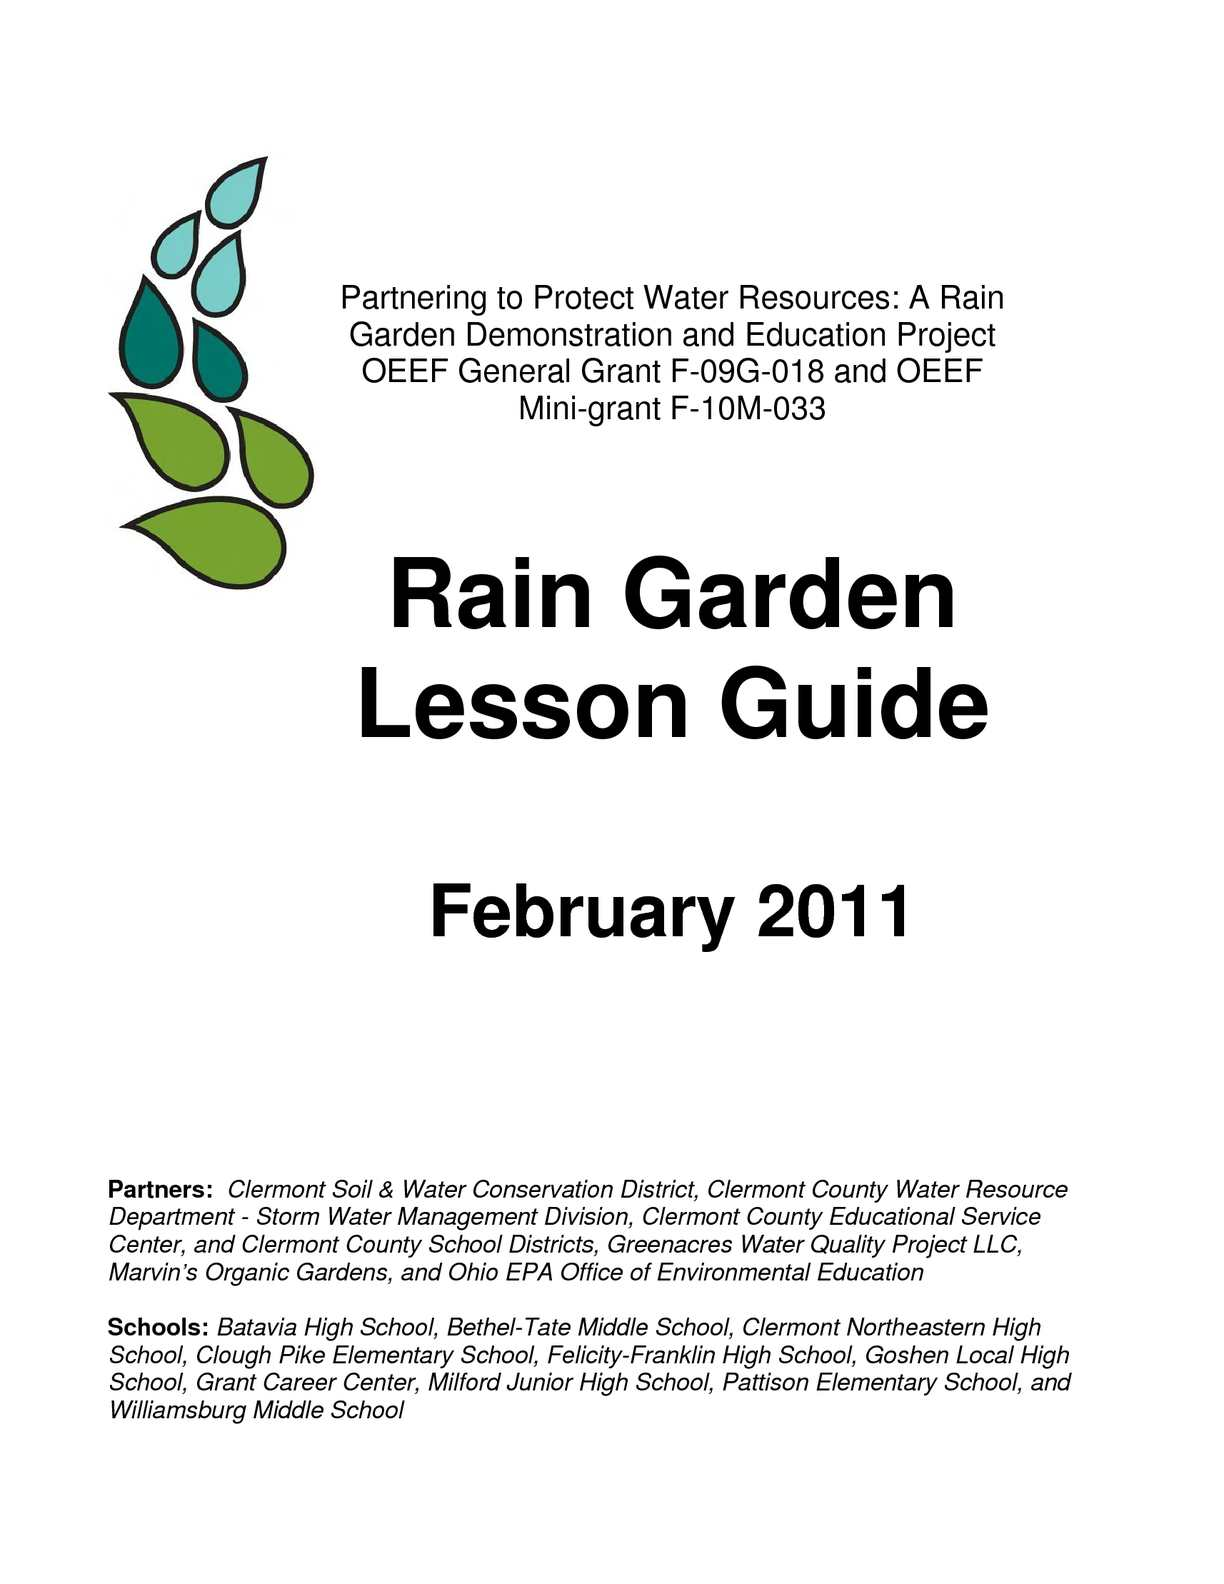 Calaméo - OH Rain Garden Lesson Guide for s, Grades 3 - 12 on rain barrels, rain gutter downspout design, rain gardens 101, rain harvesting system design, french drain design, dry well design, gasification design, rain illustration, rain construction, rain water design, bioswale design, rain art drawings, rain roses,